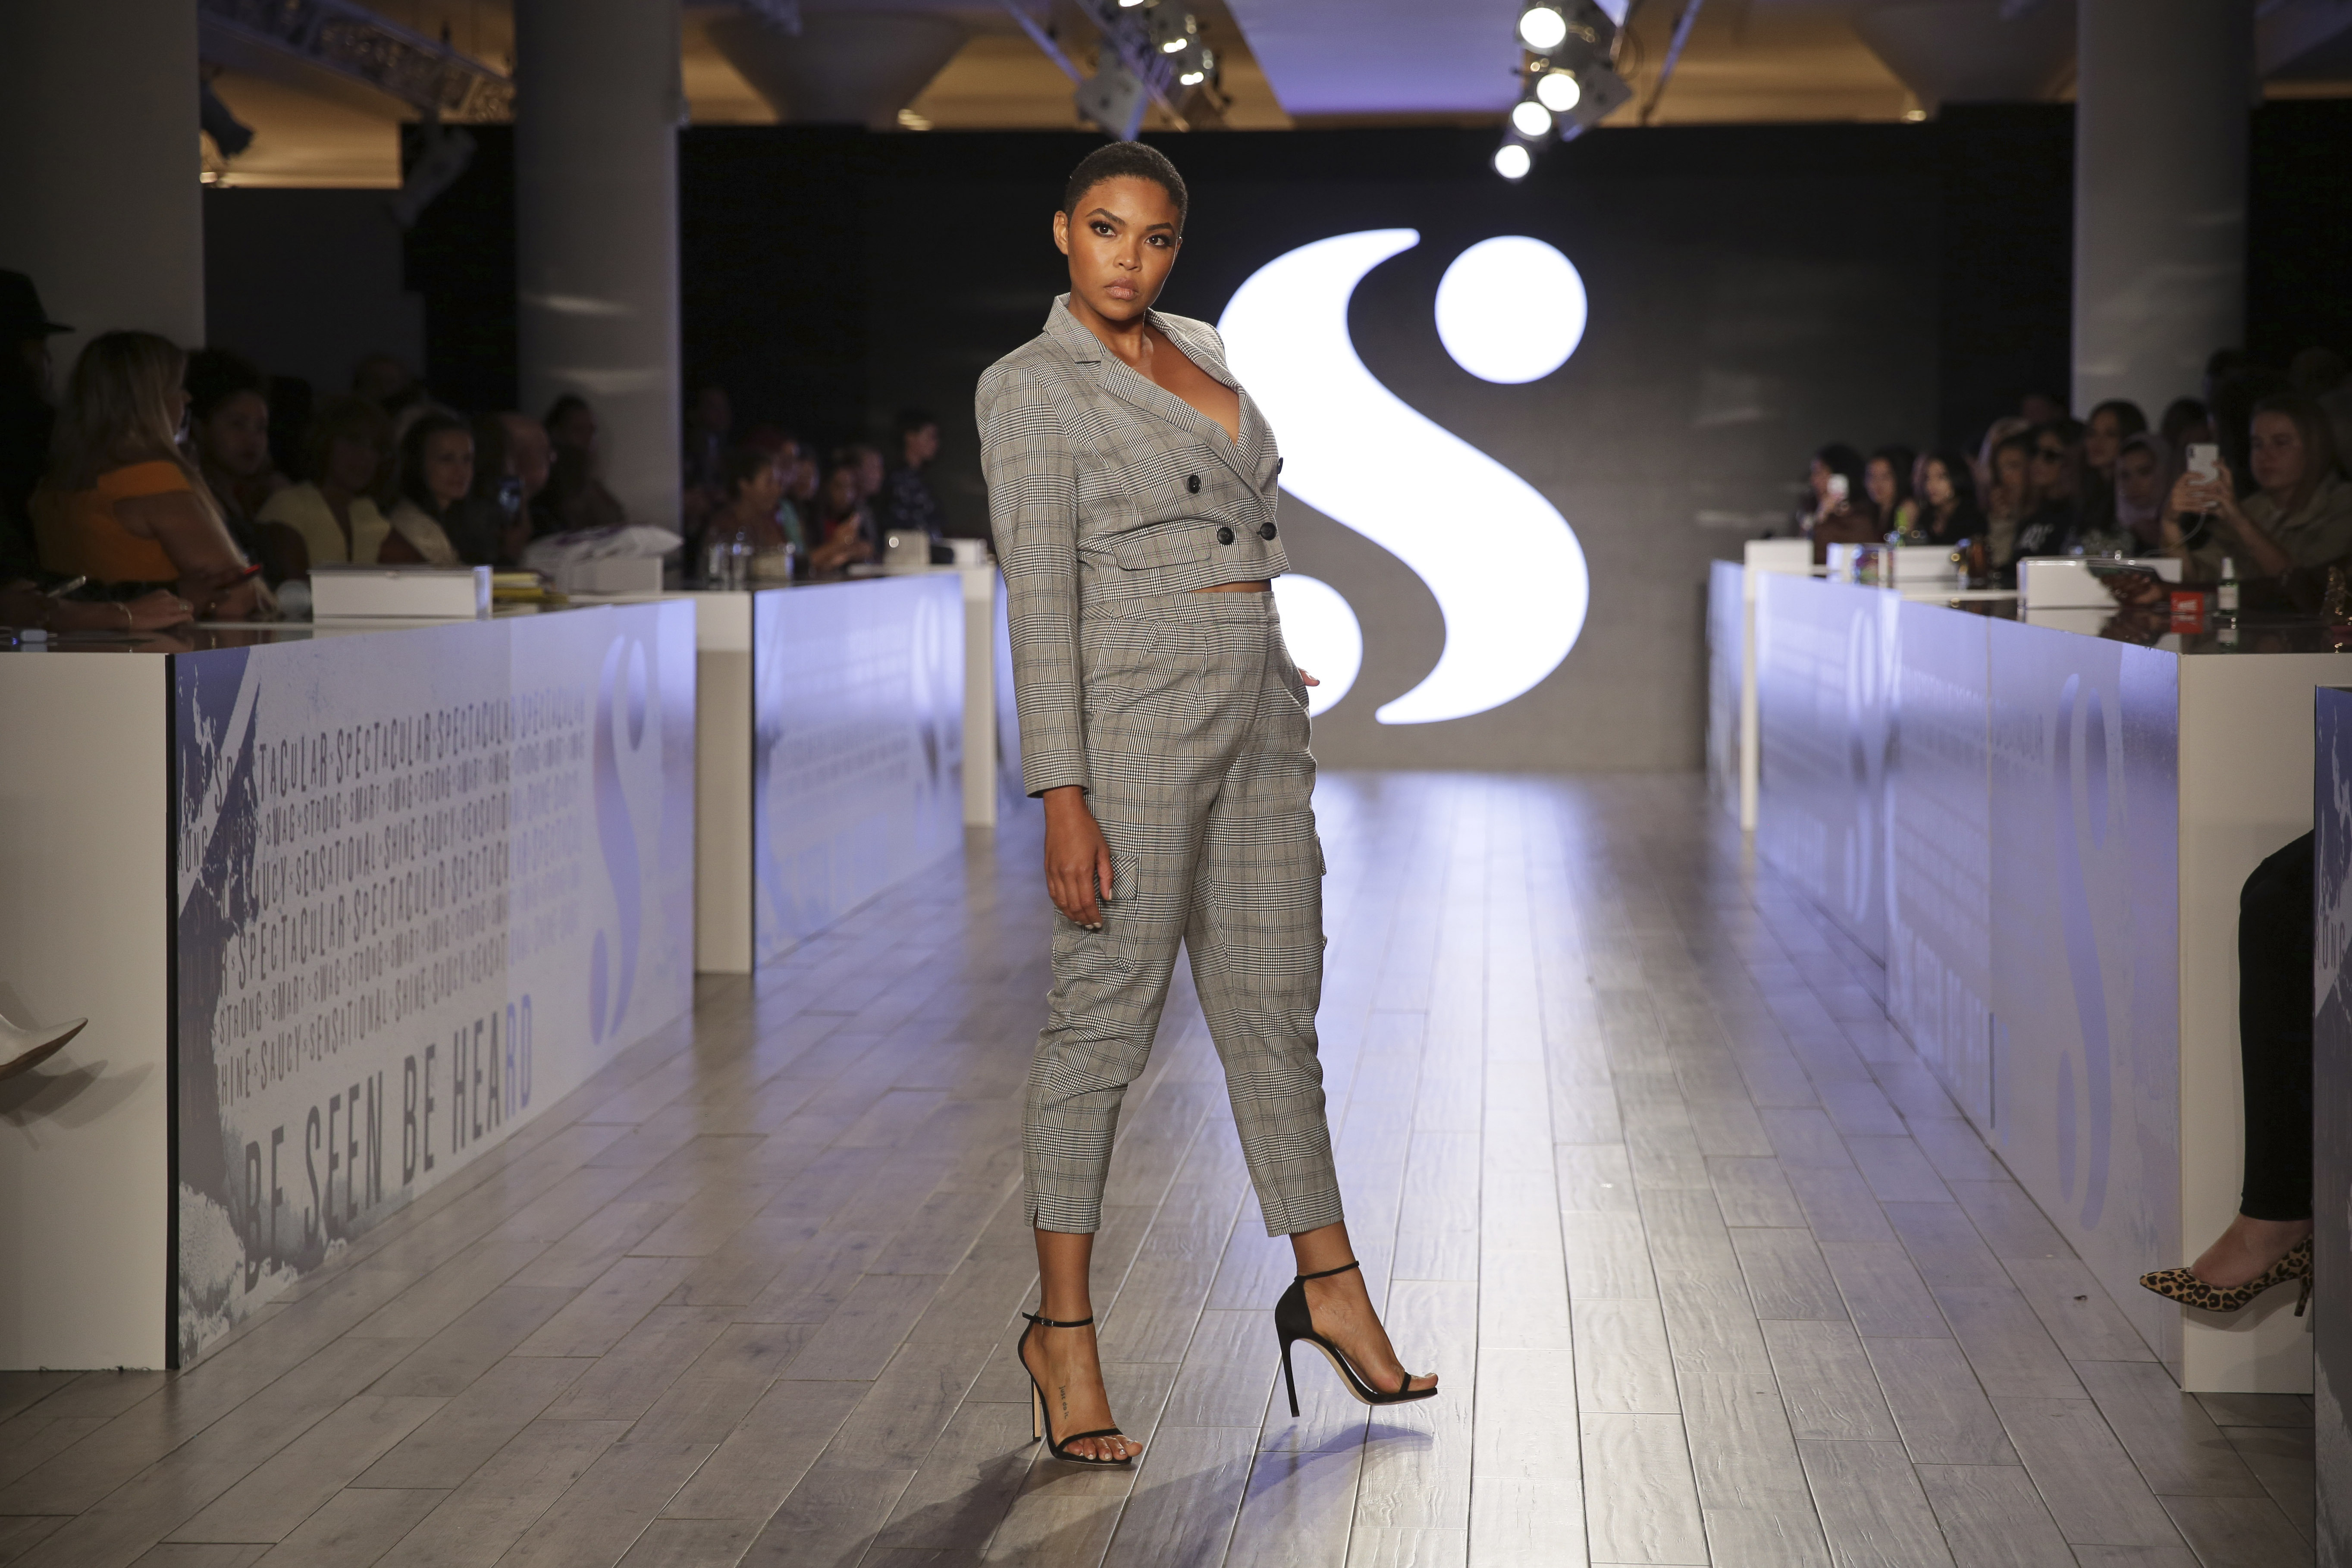 A model wears clothes by Serena Williams during Fashion Week in New York, Tuesday, Sept. 10, 2019